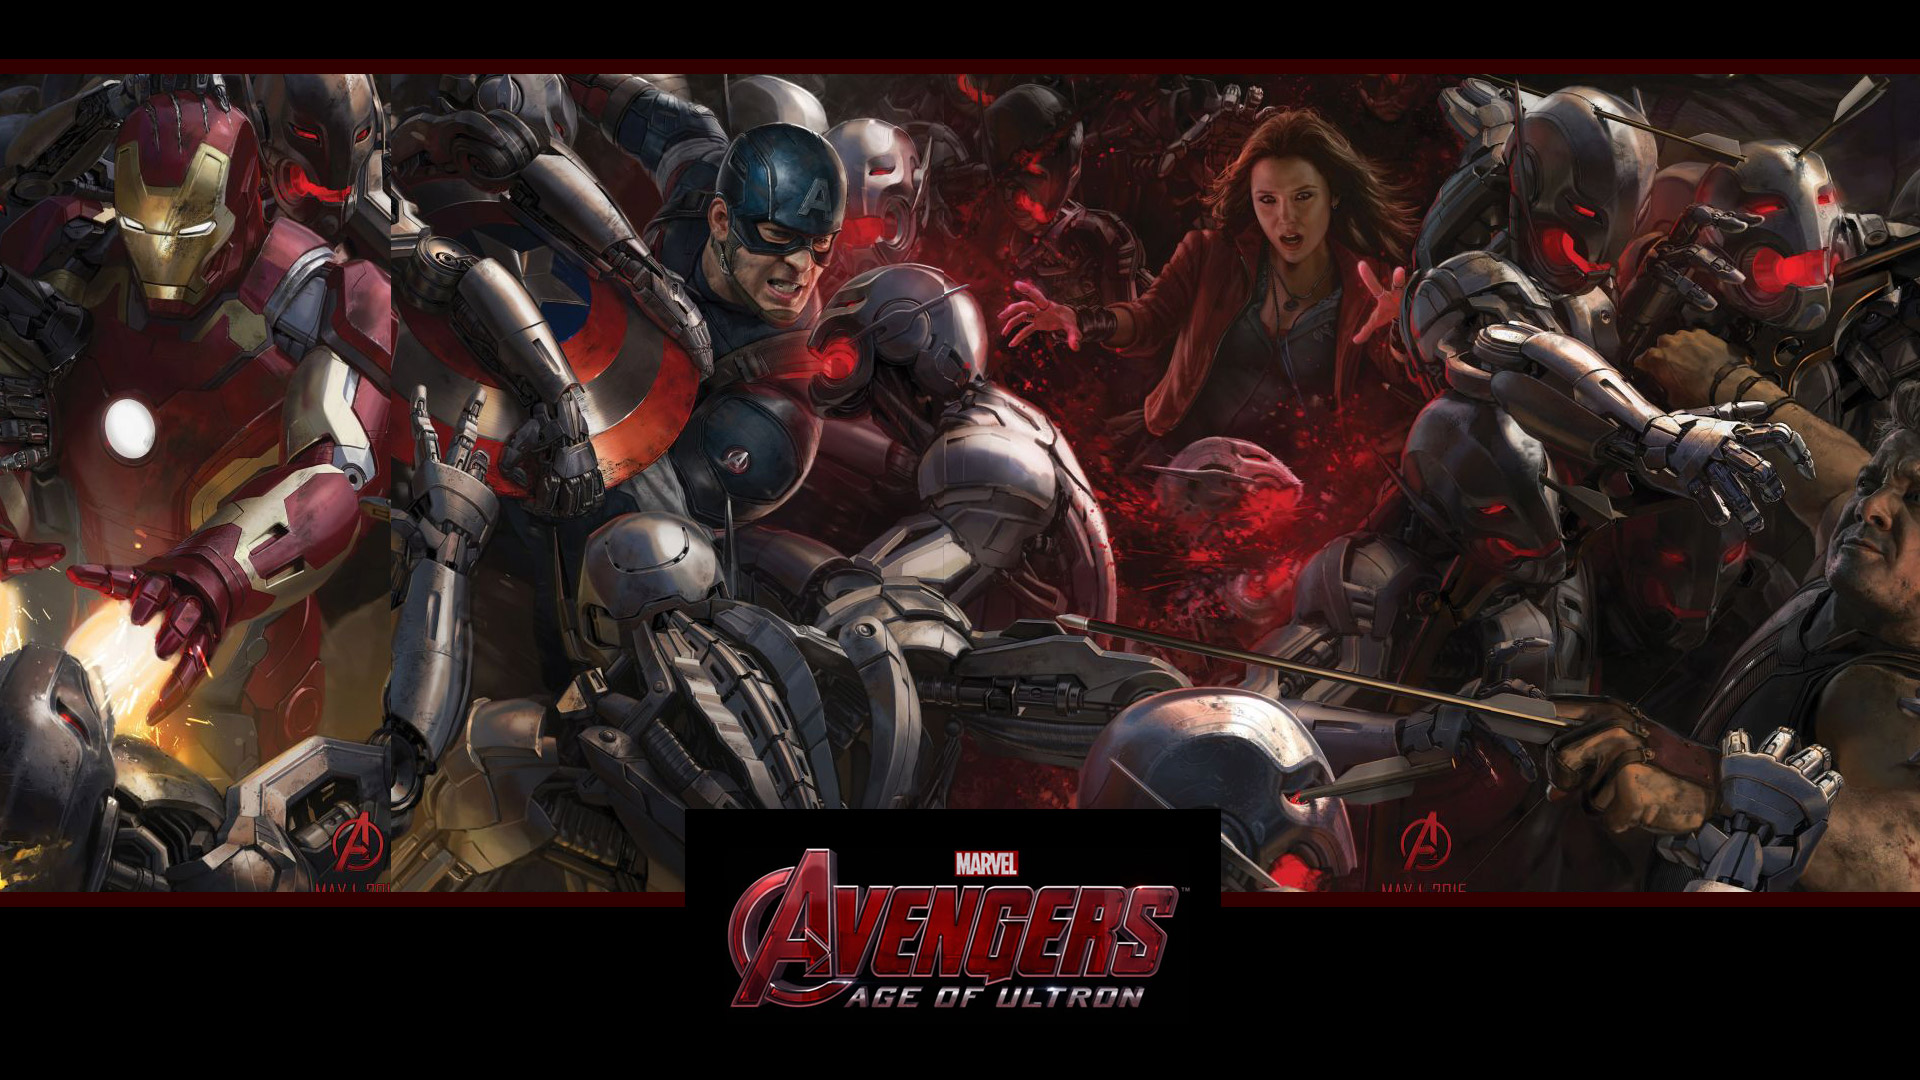 Avengers wallpapers for iphone ipad and desktop - Fondos de pantalla 3d avengers ...